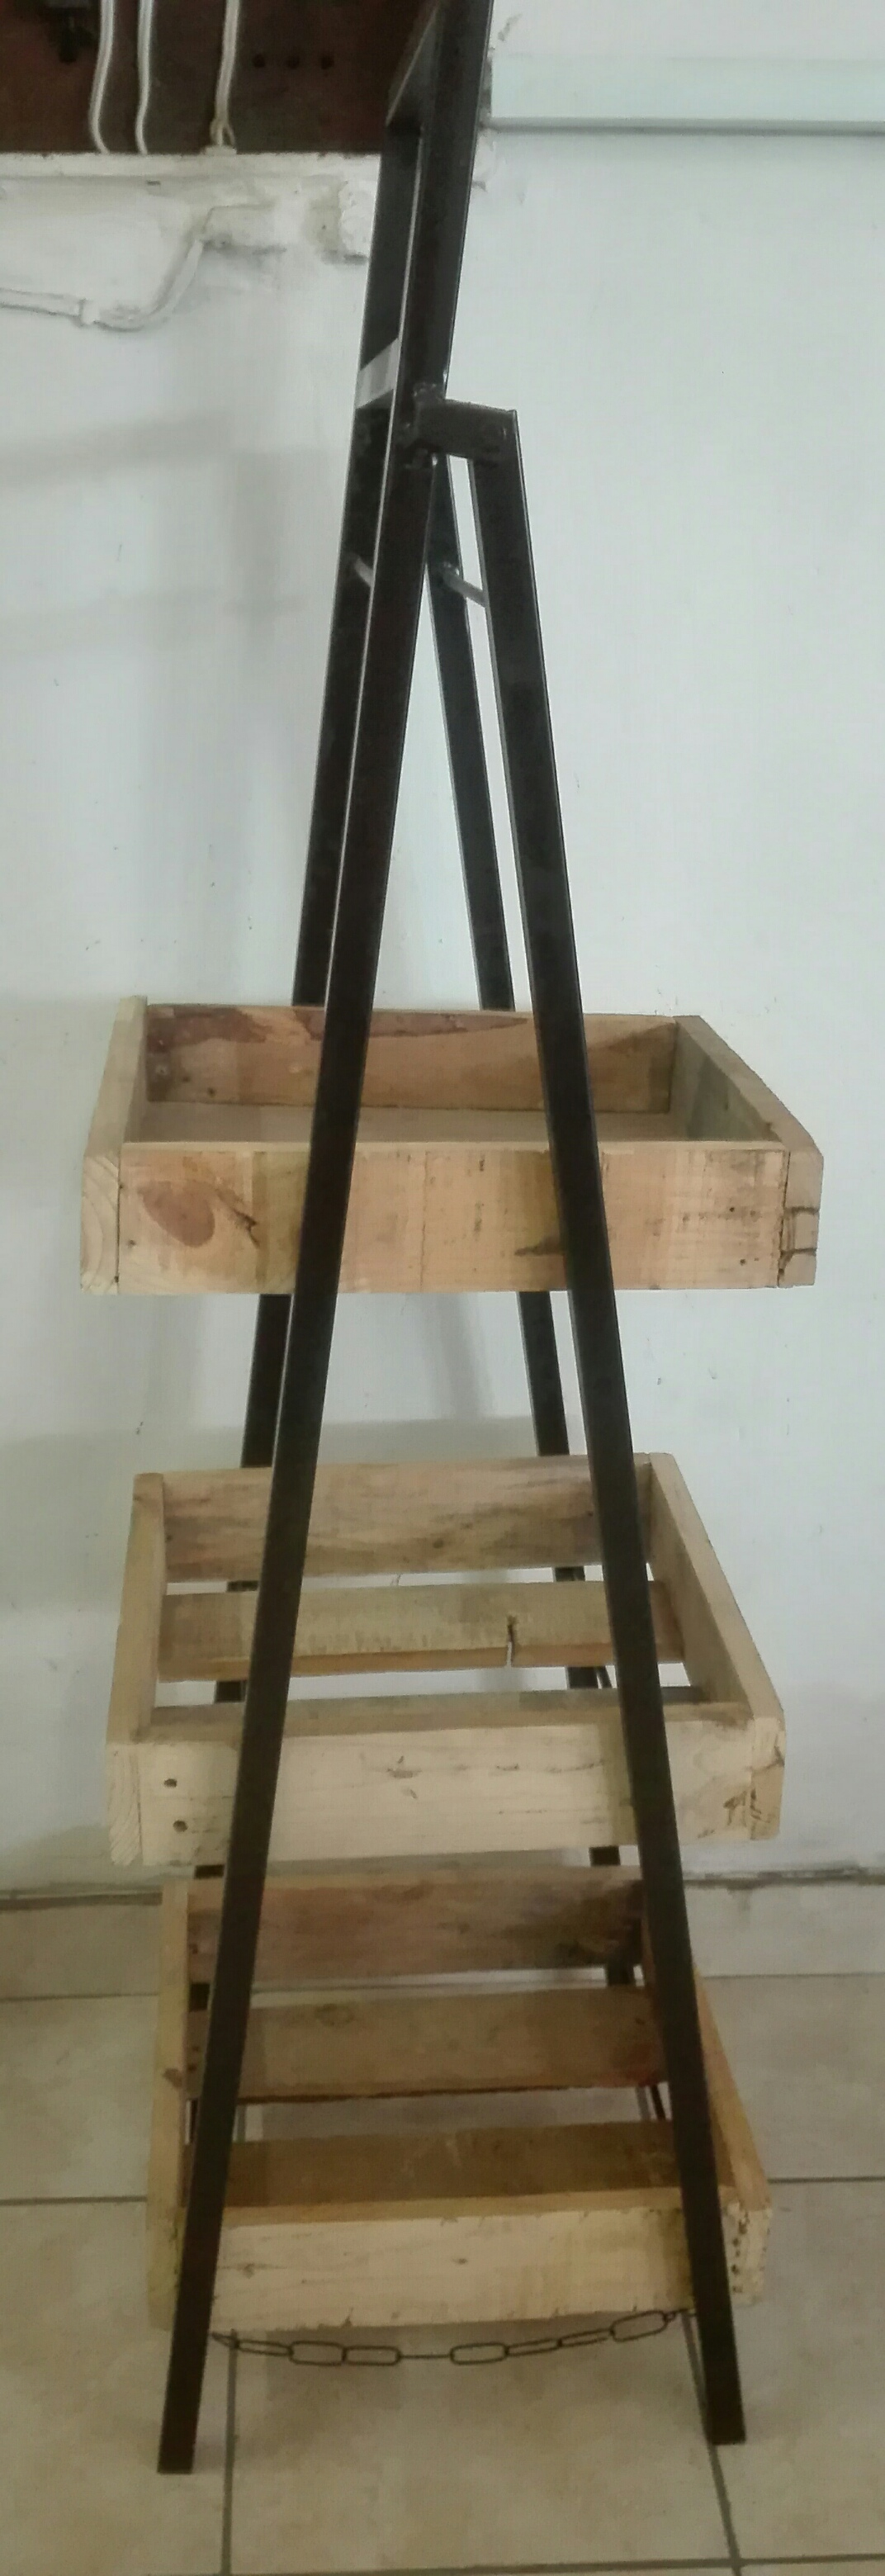 3 Tier Rustic Crate Display Stand